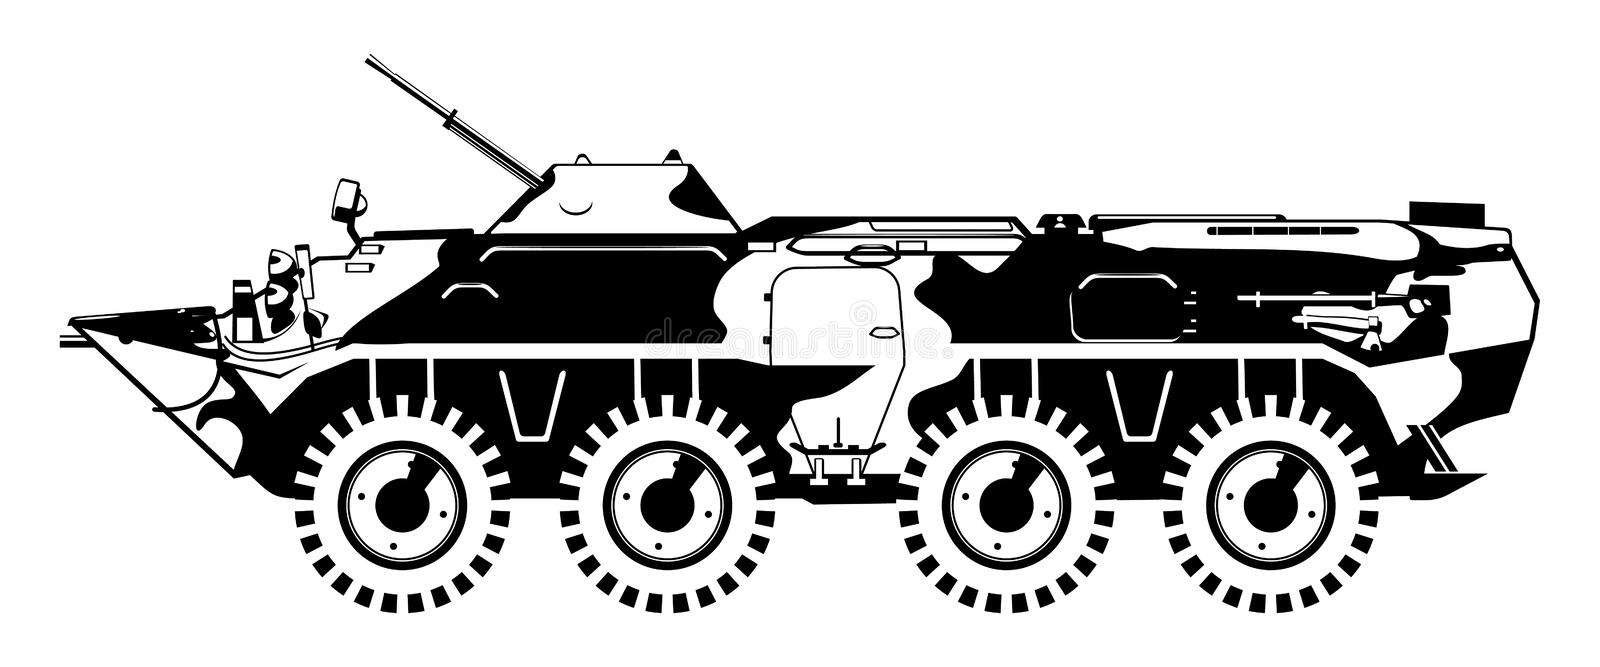 Armored Troop-carrier. Royalty Free Stock Photo